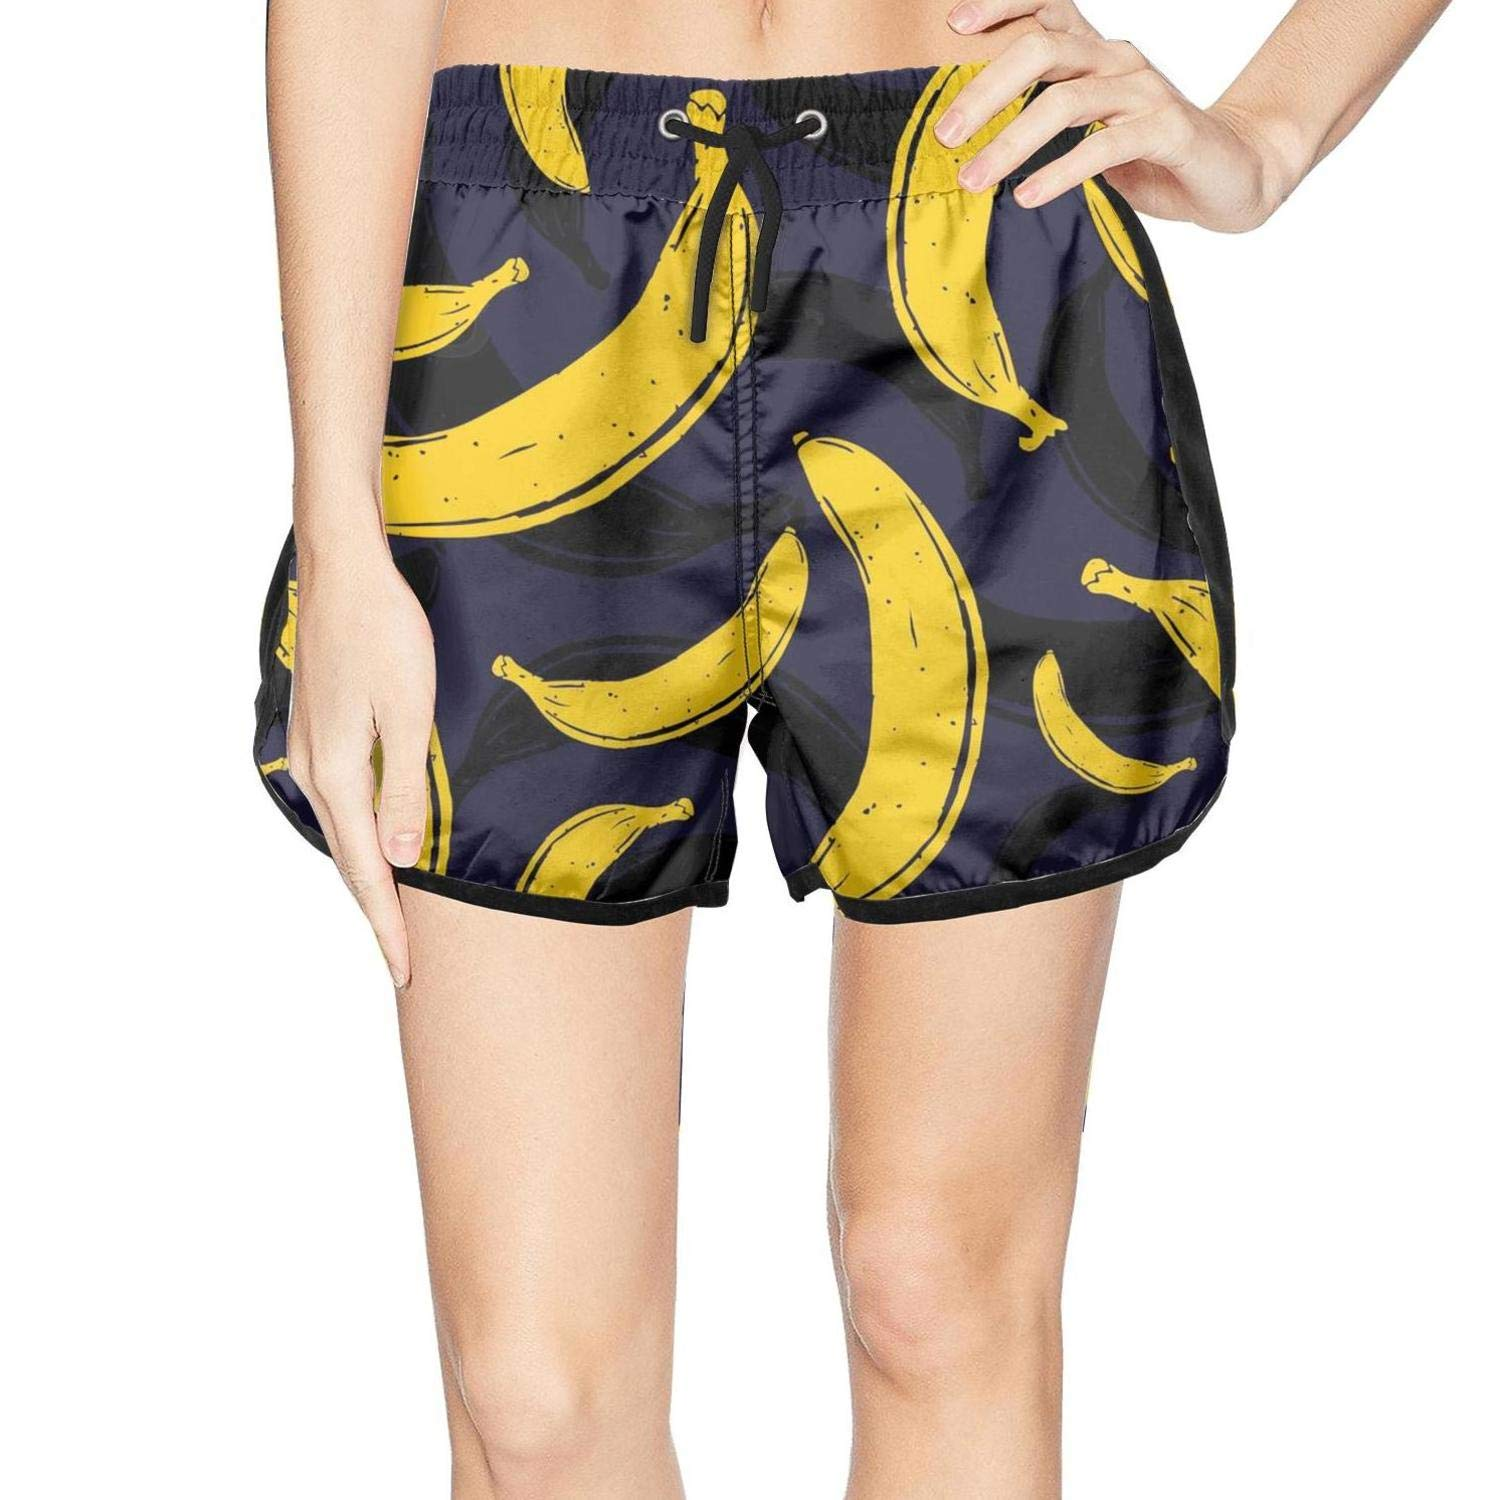 XULANG Women's Pop Art Banana Black Pattern Swimming Trunks Jogging Swimsuits Casual Sport Boardshorts